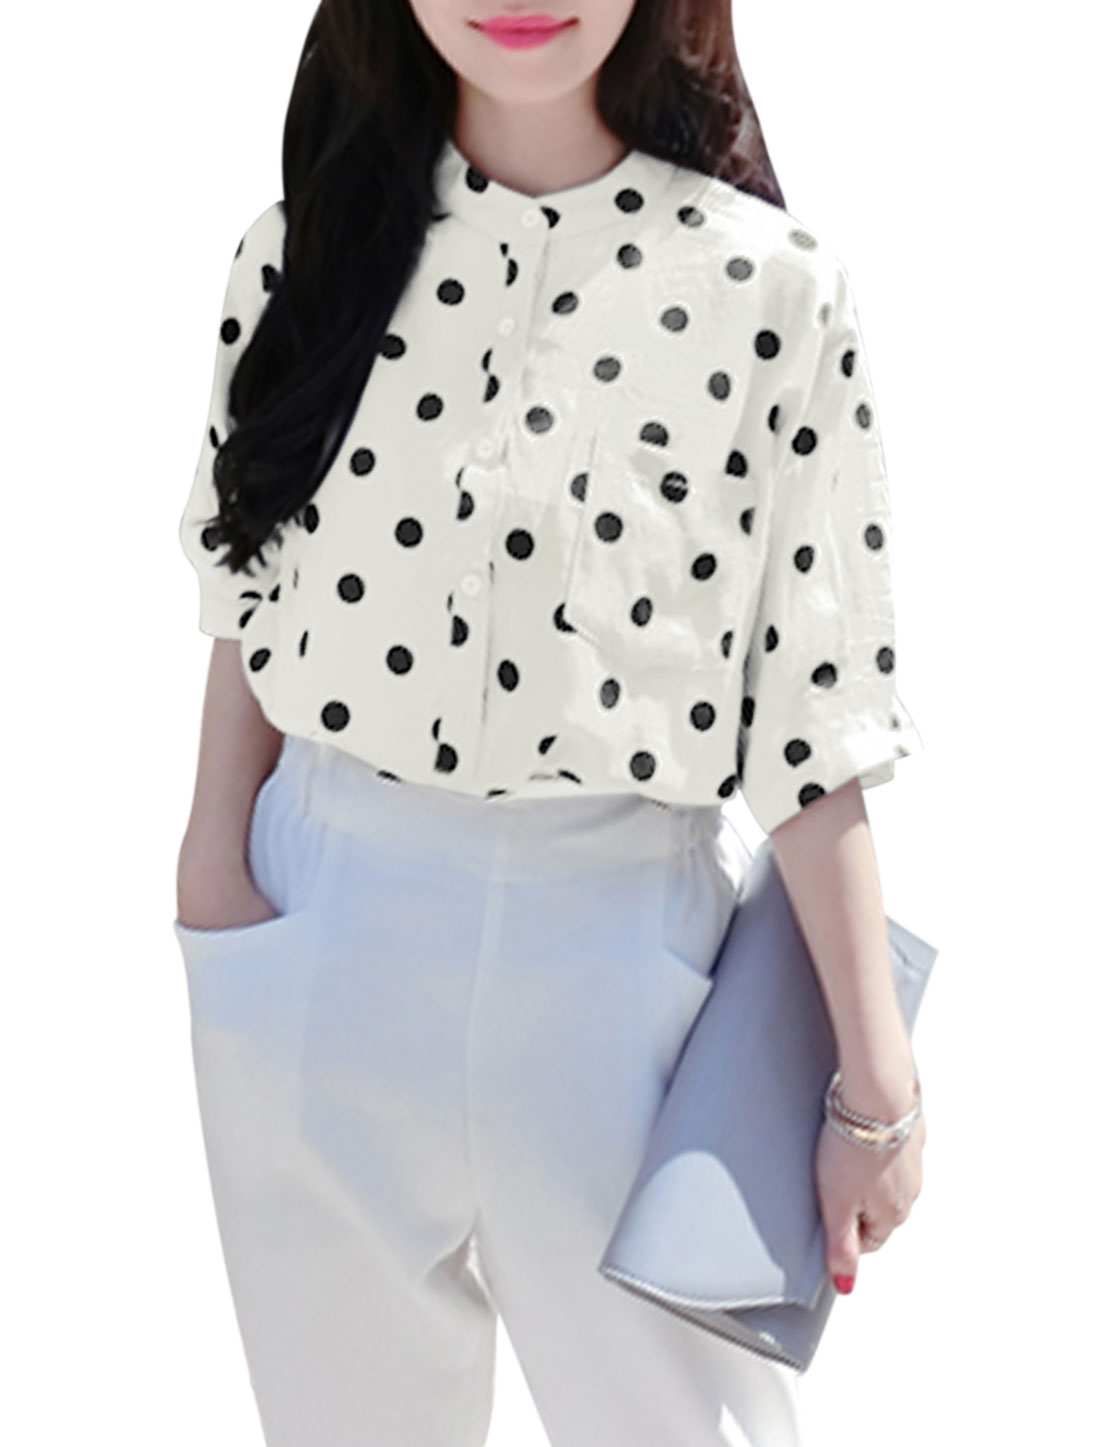 Woman Polka Dots Prints Stand Collar 3/4 Sleeves Button Down Top White XS